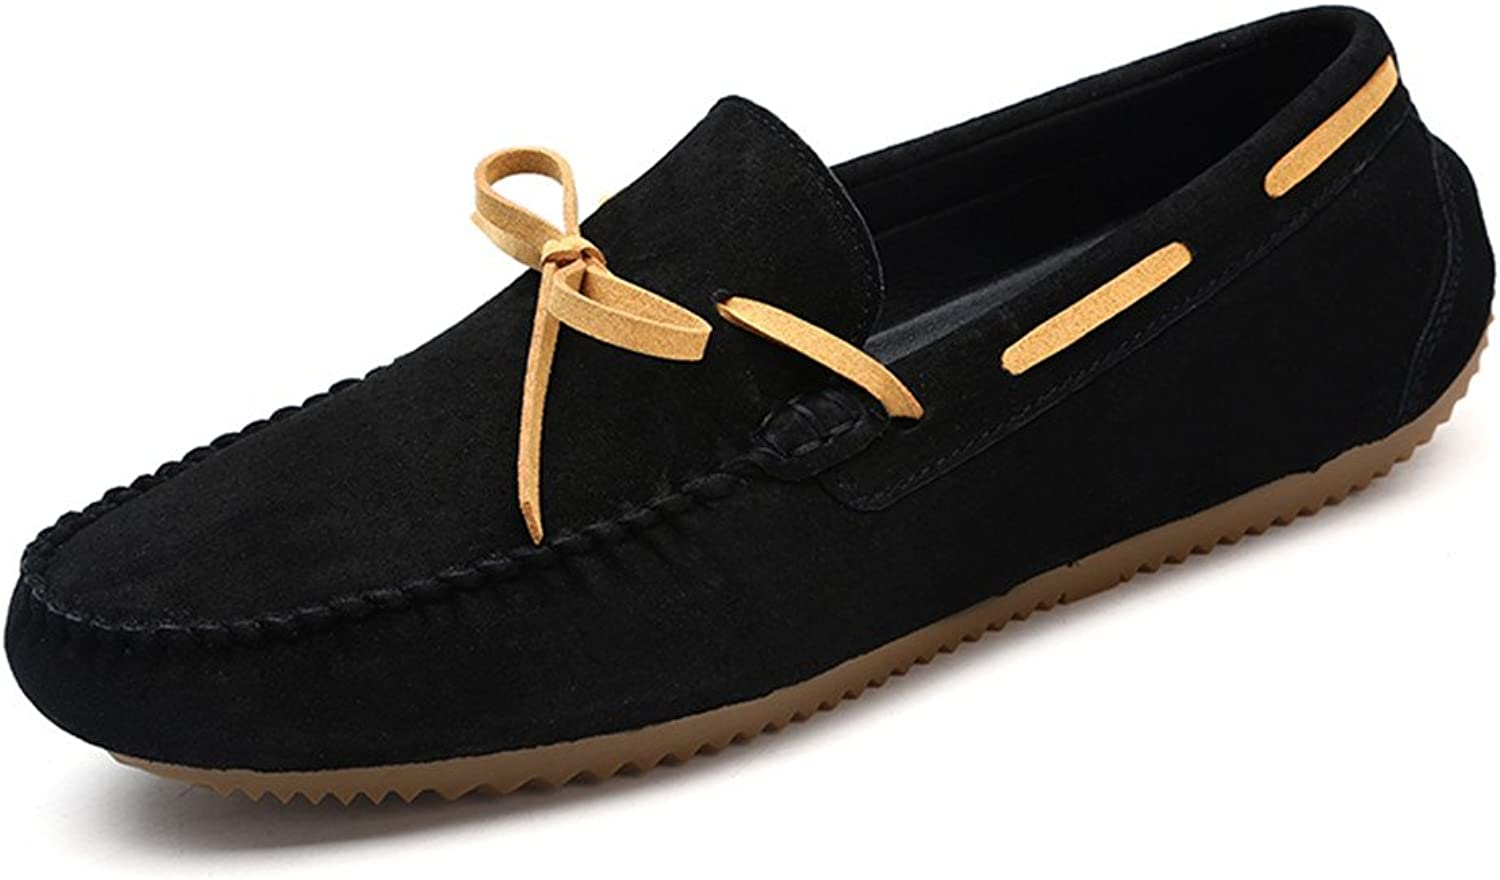 CHENXD shoes, Men's Fashion Breathable Flat Soles Drive Loafers for Casual Leather Frosted Boat Moccasins